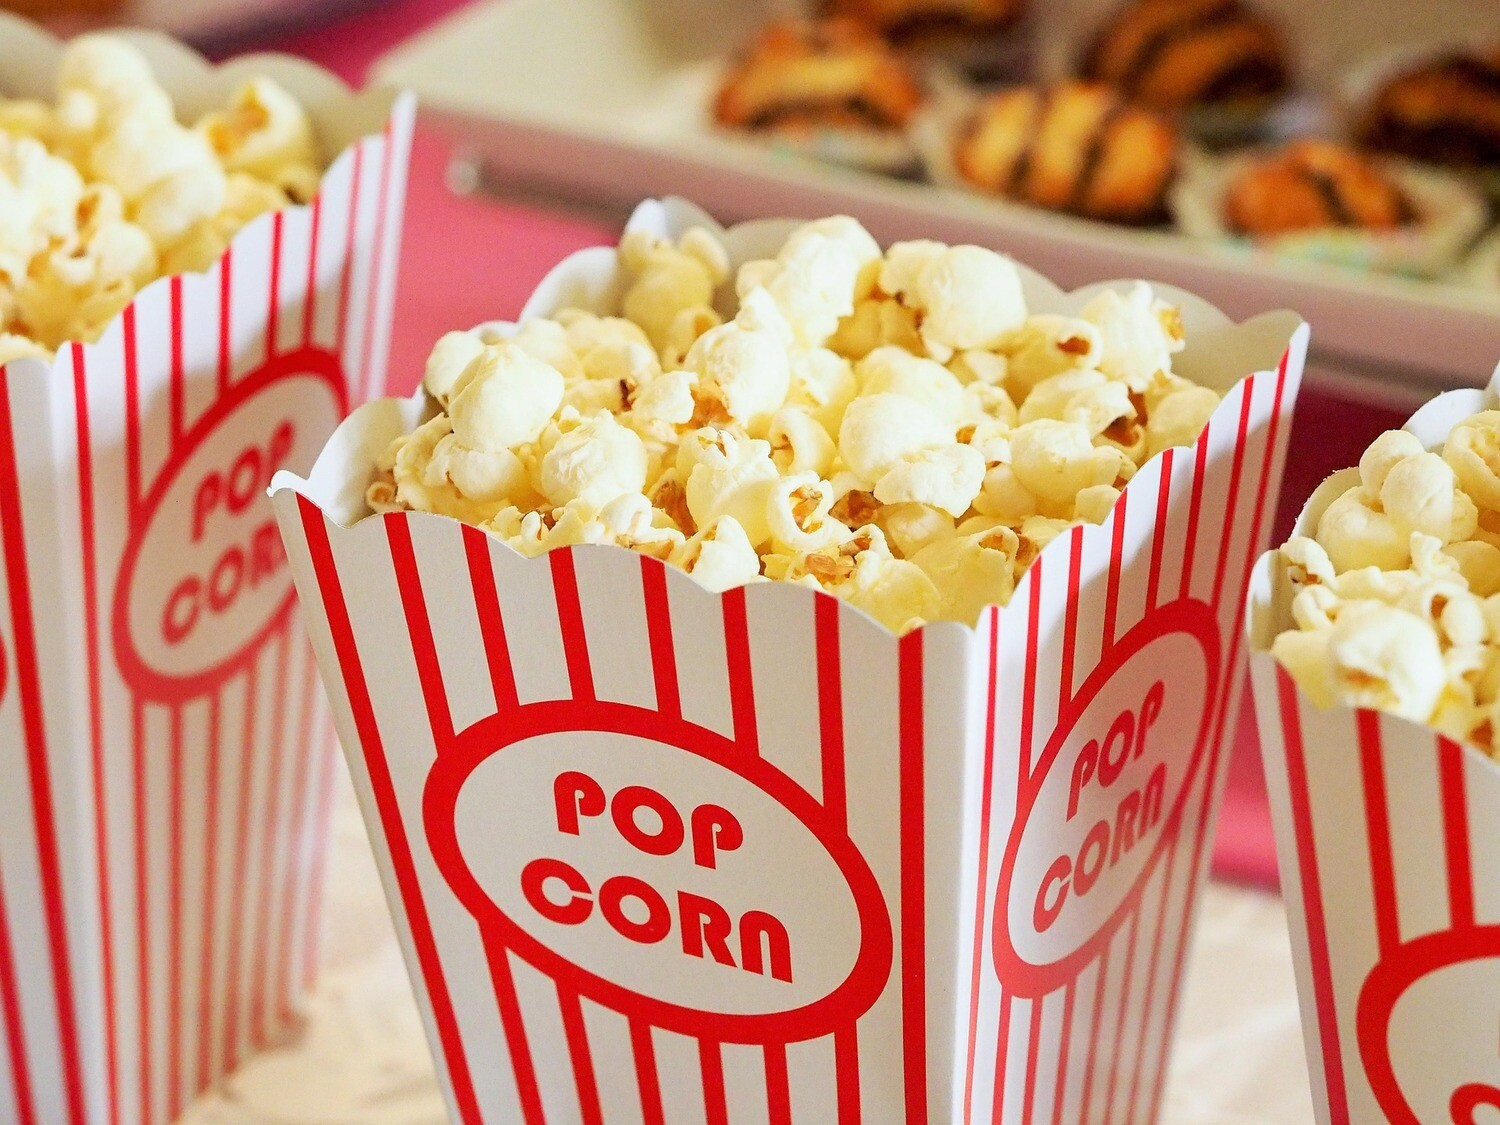 Hot Buttered Popcorn Flavoring (Unsweetened)